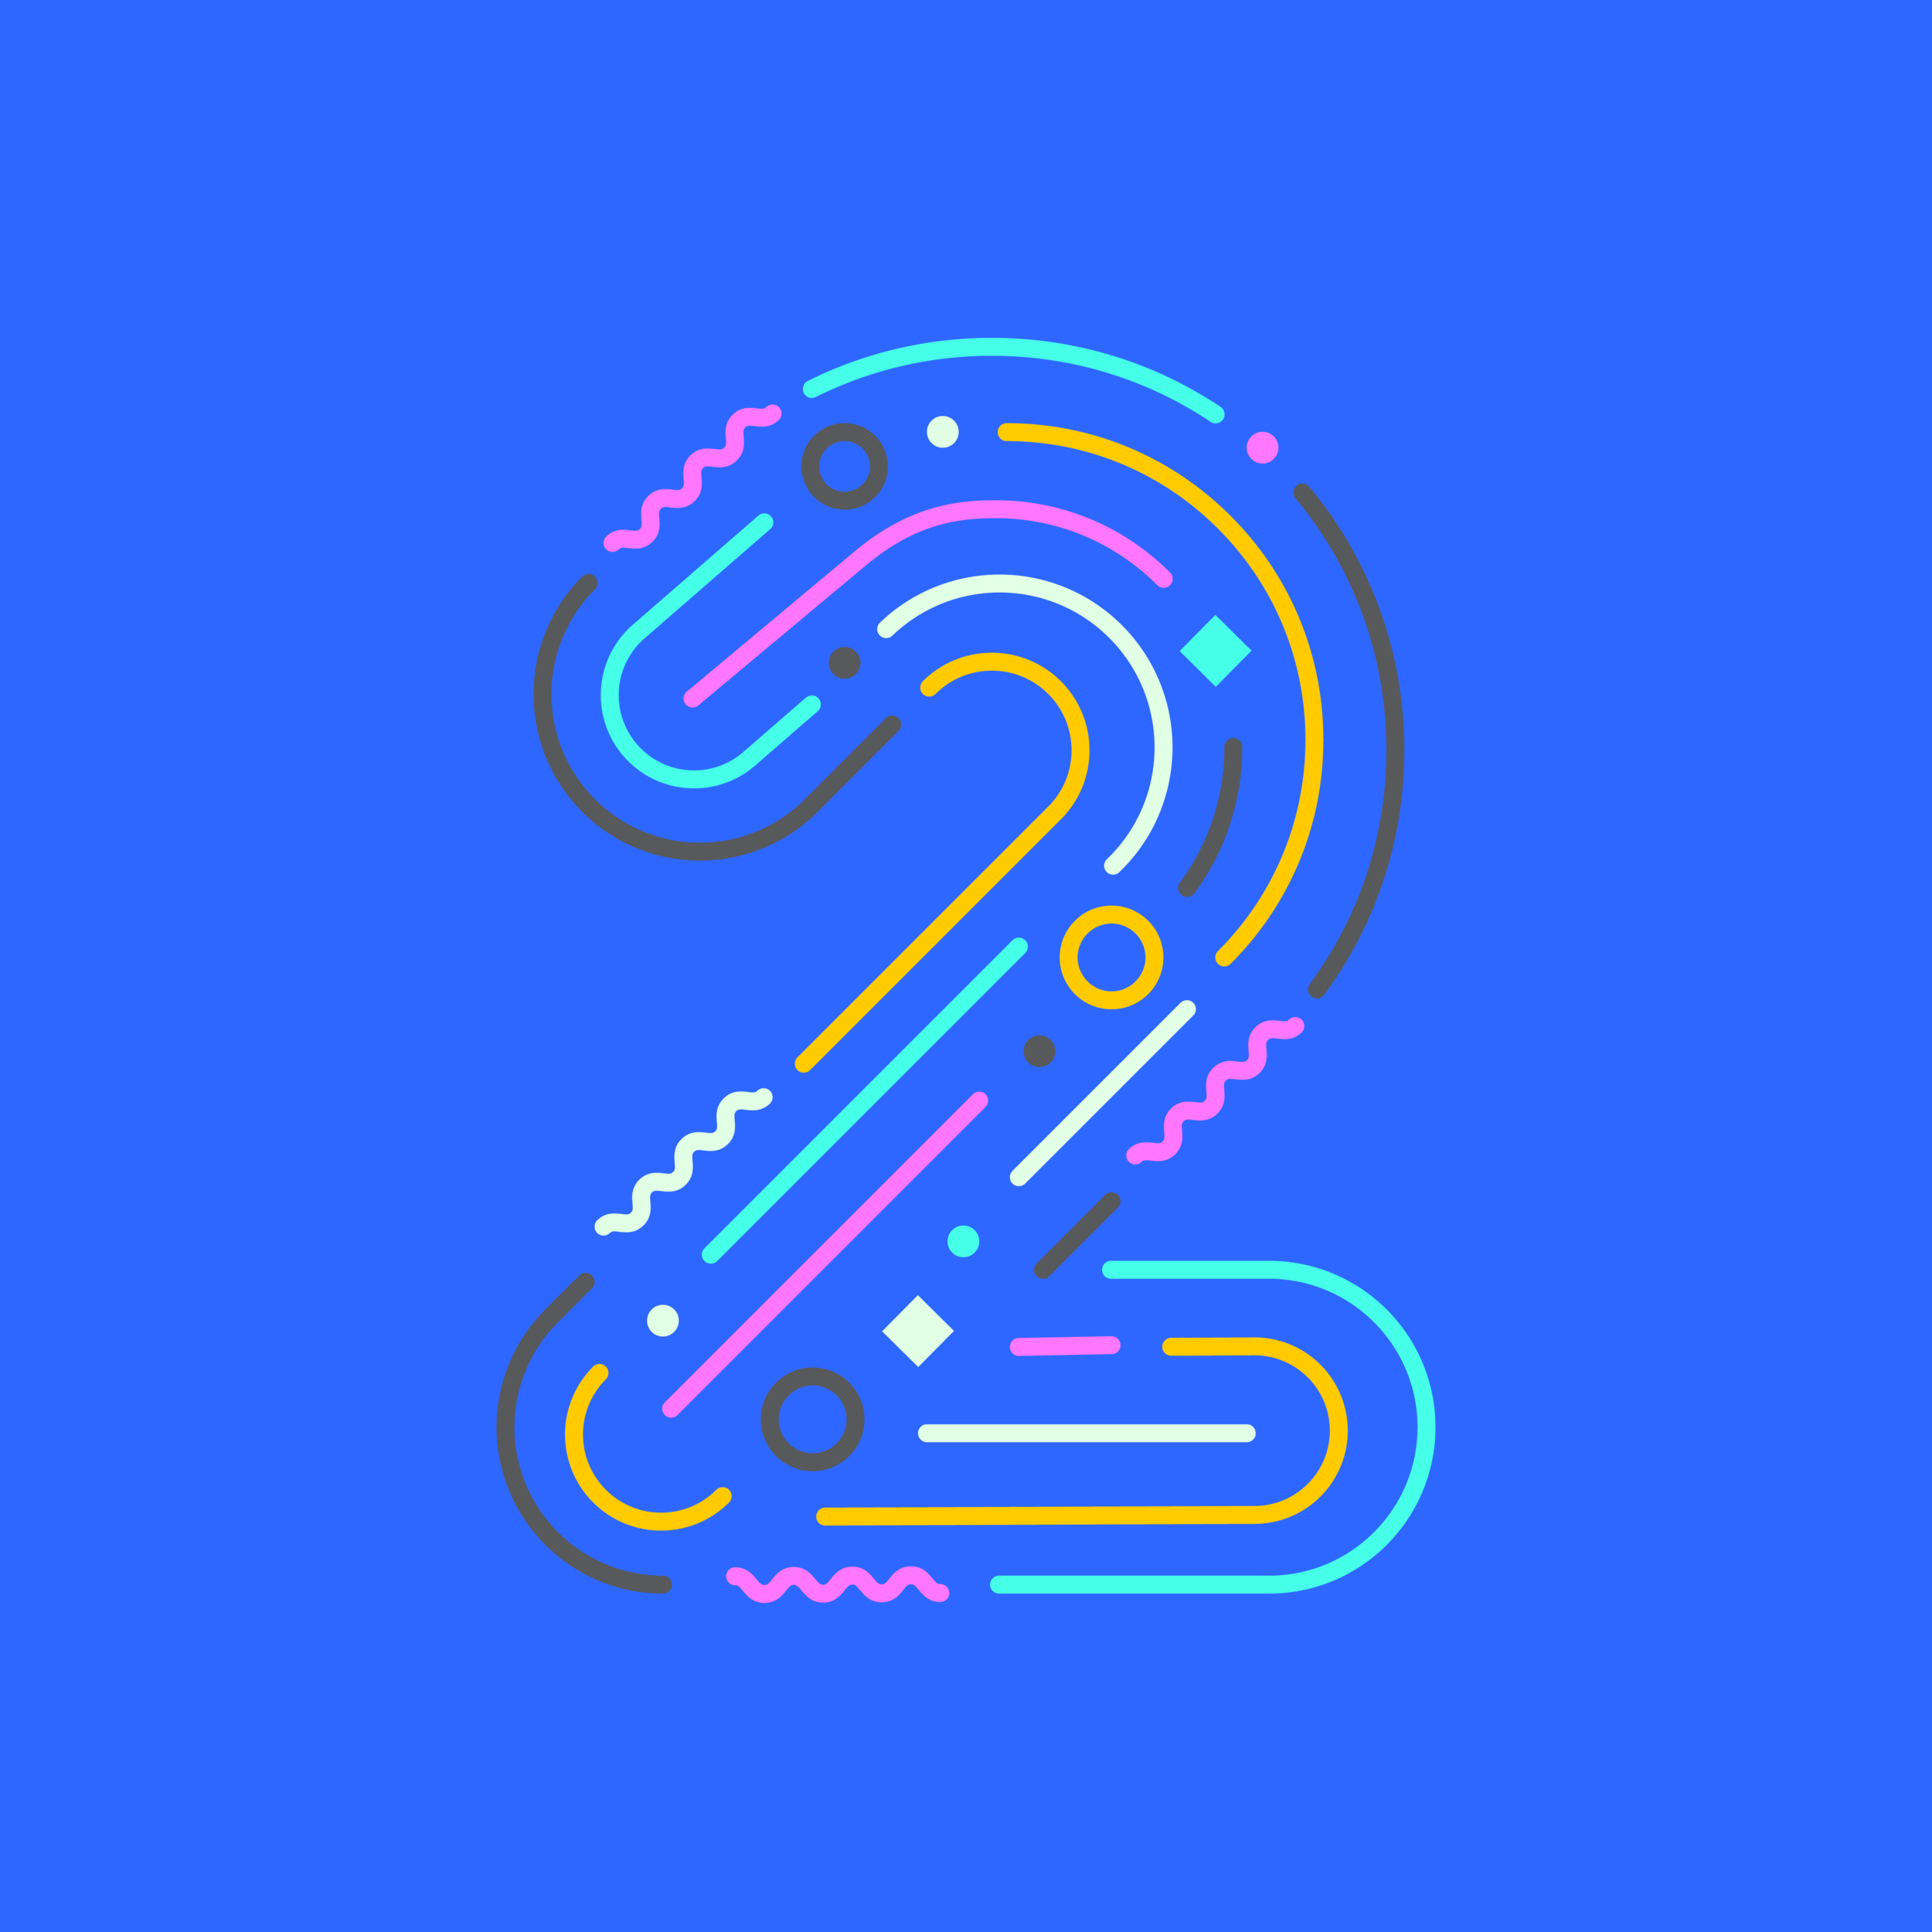 36DaysofType_2a-01.png